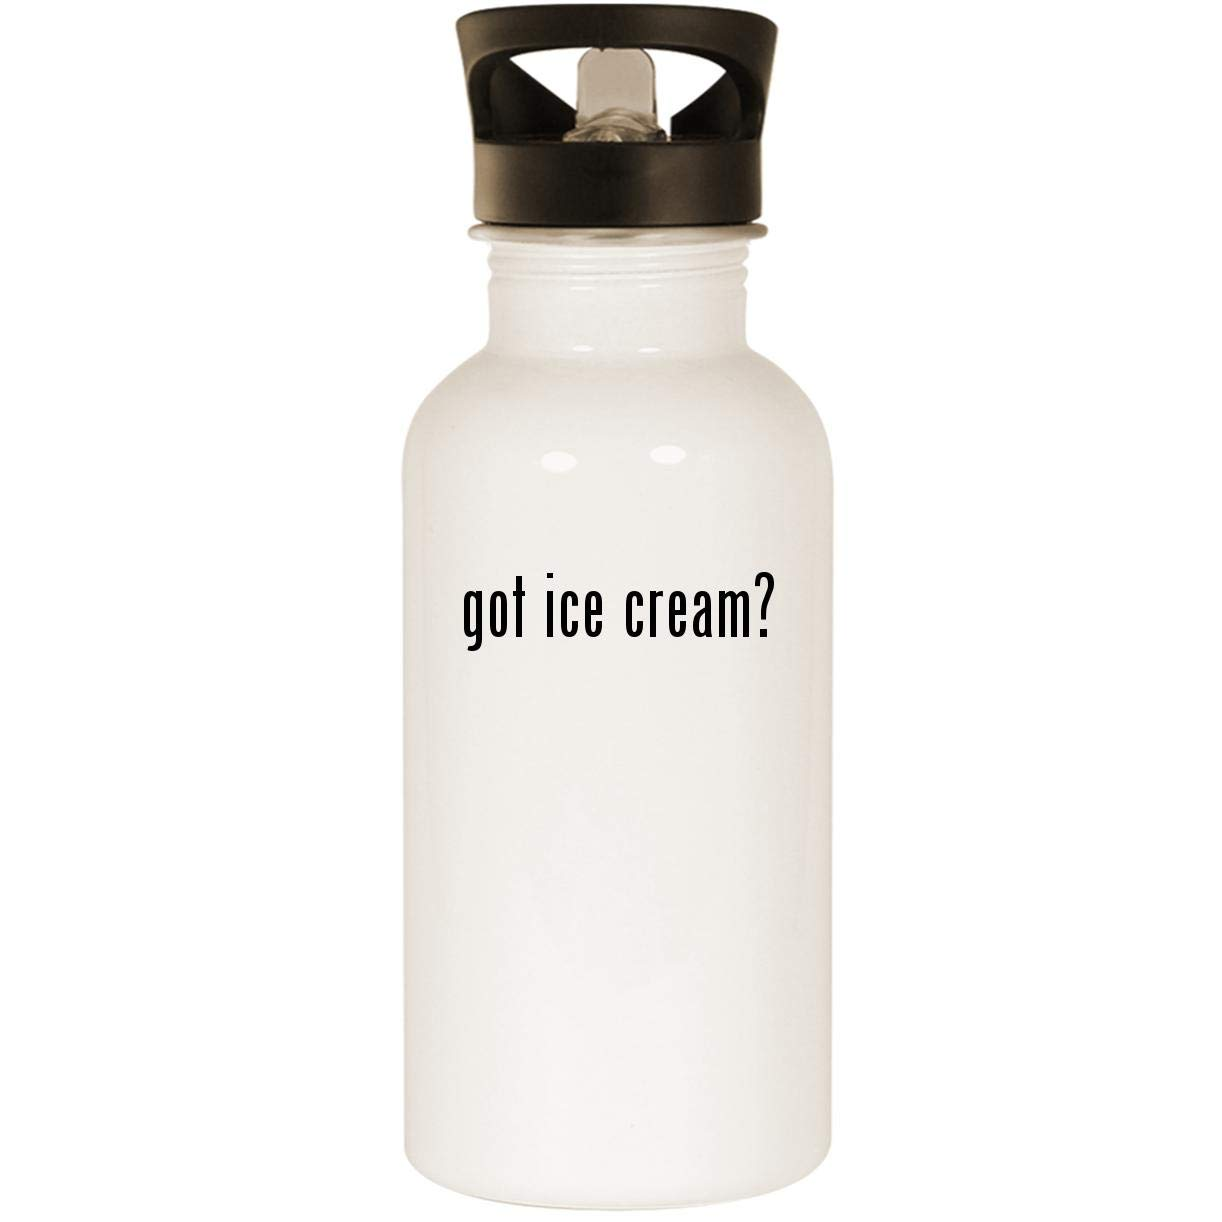 got ice cream? - Stainless Steel 20oz Road Ready Water Bottle, White